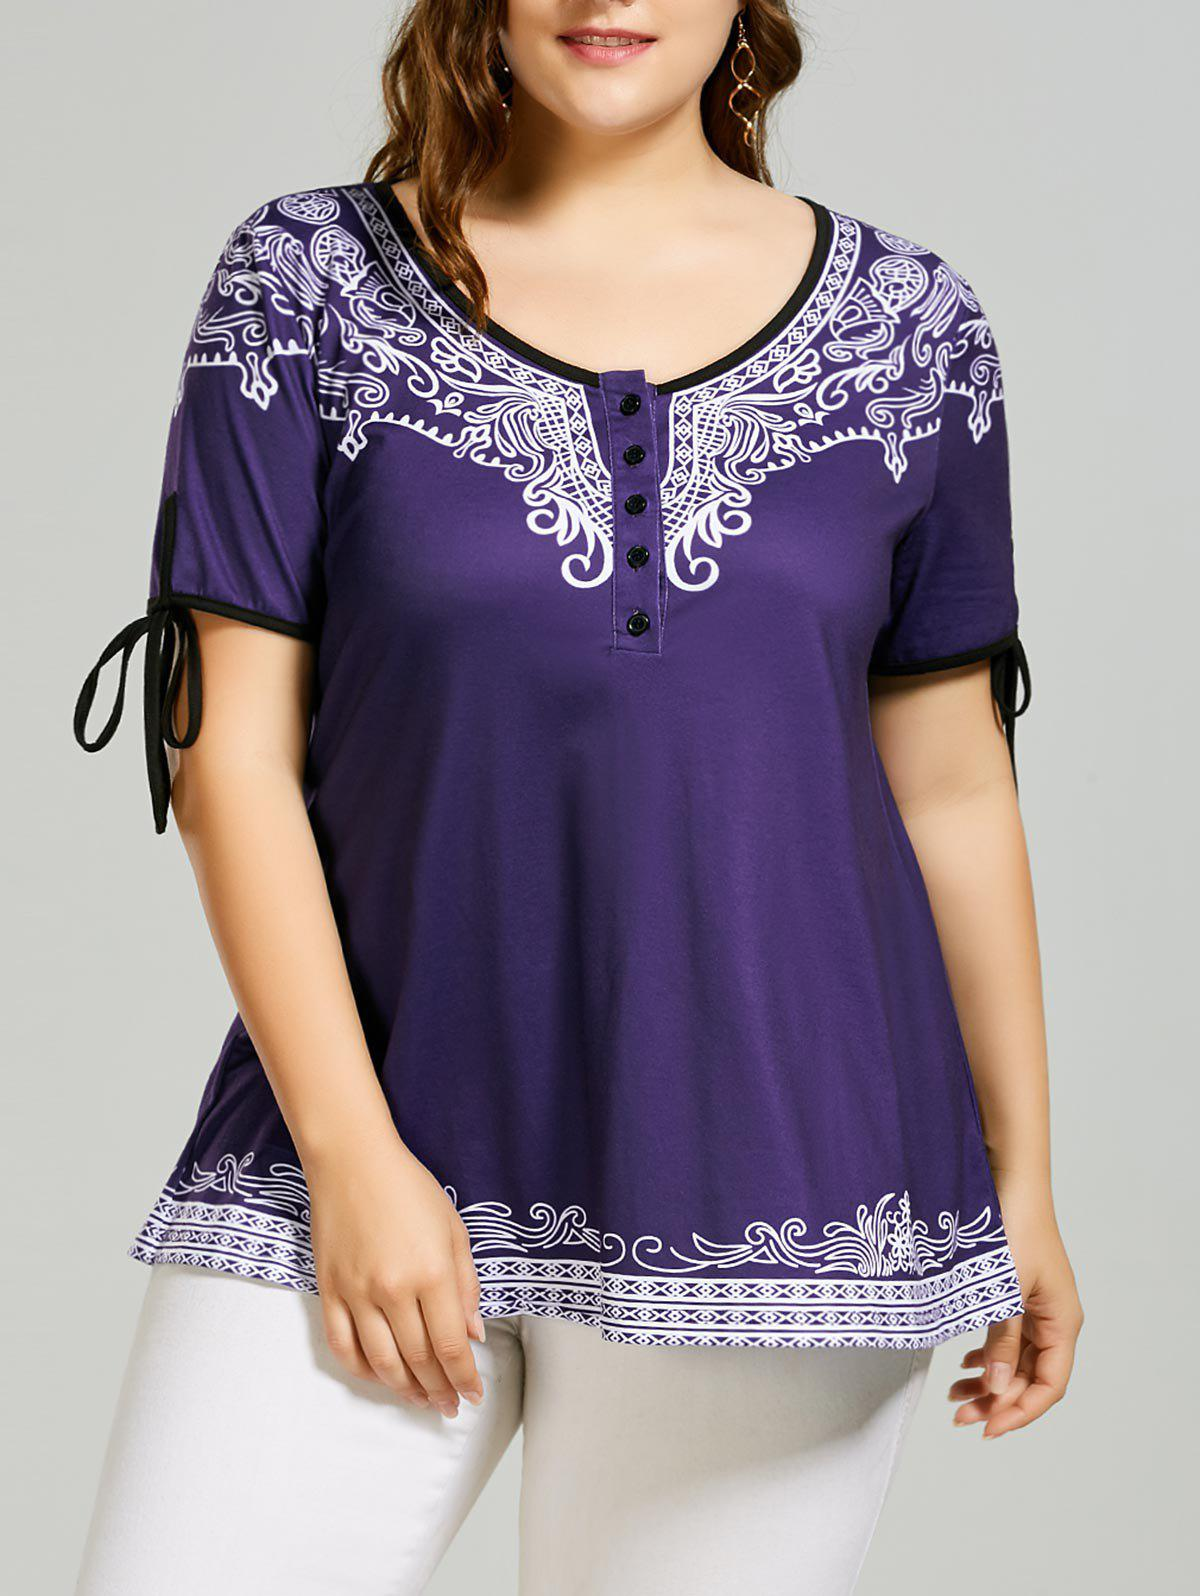 Scoop Neck Self Tie Printed T-shirt - BLUE VIOLET XL